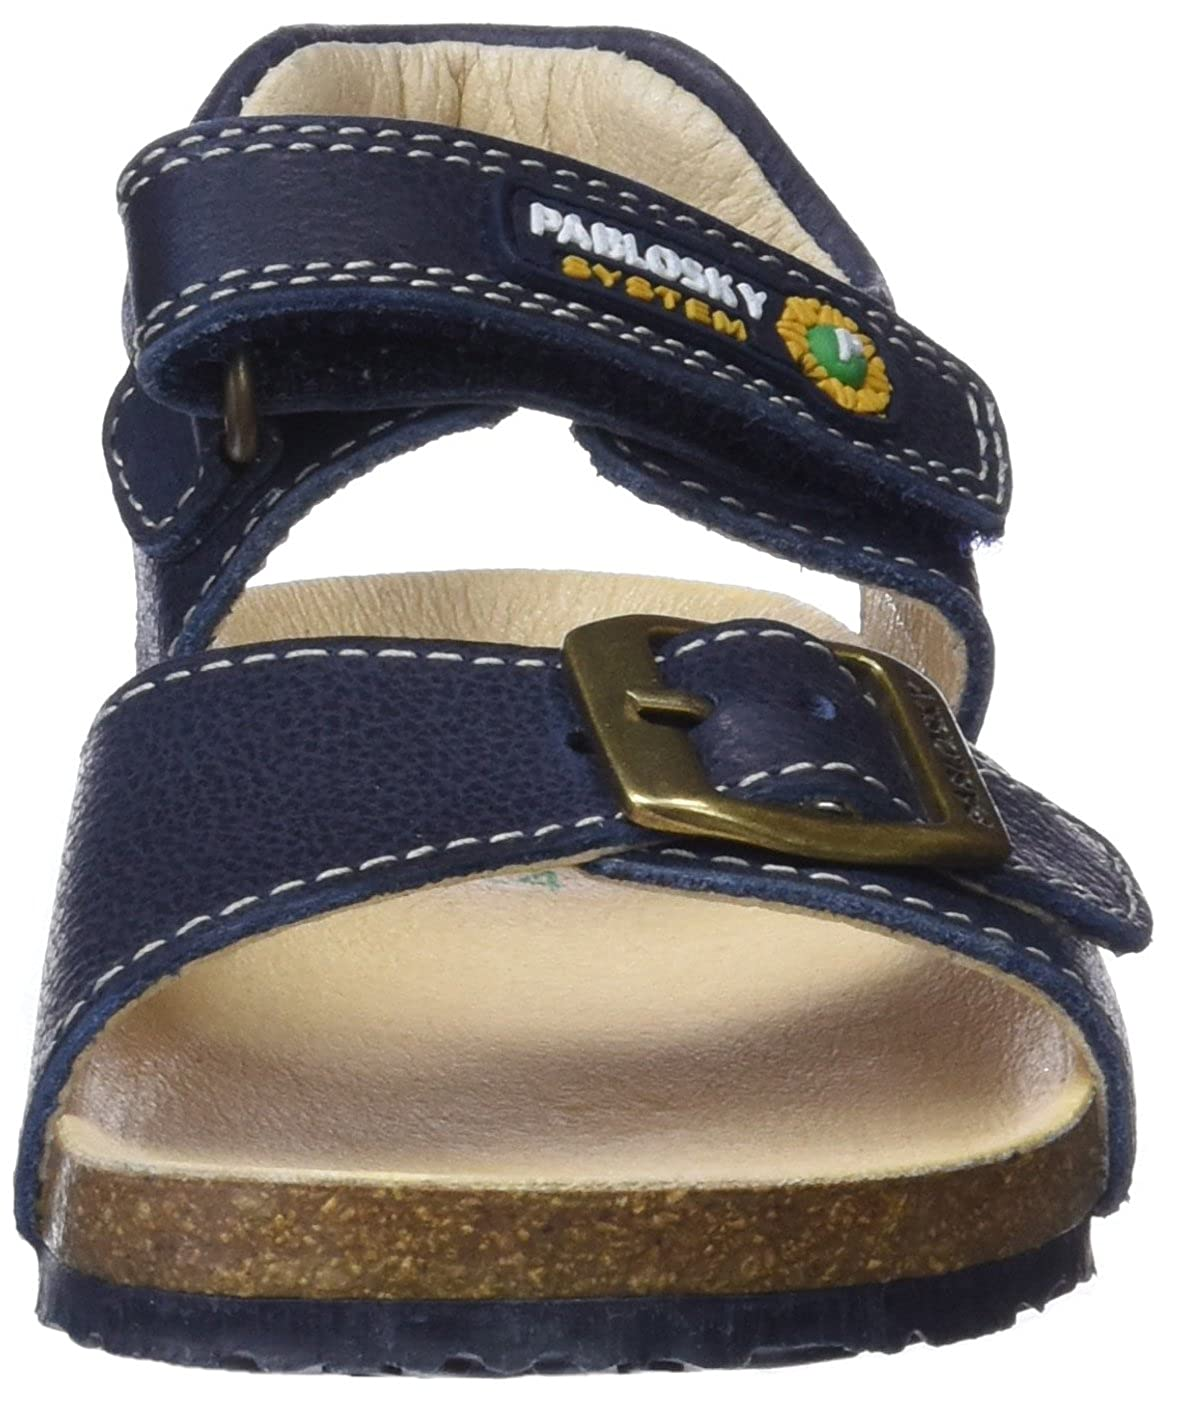 Pablosky Boys/' 584626 Open Toe Sandals Azul 584626 Blue 8.5 UK